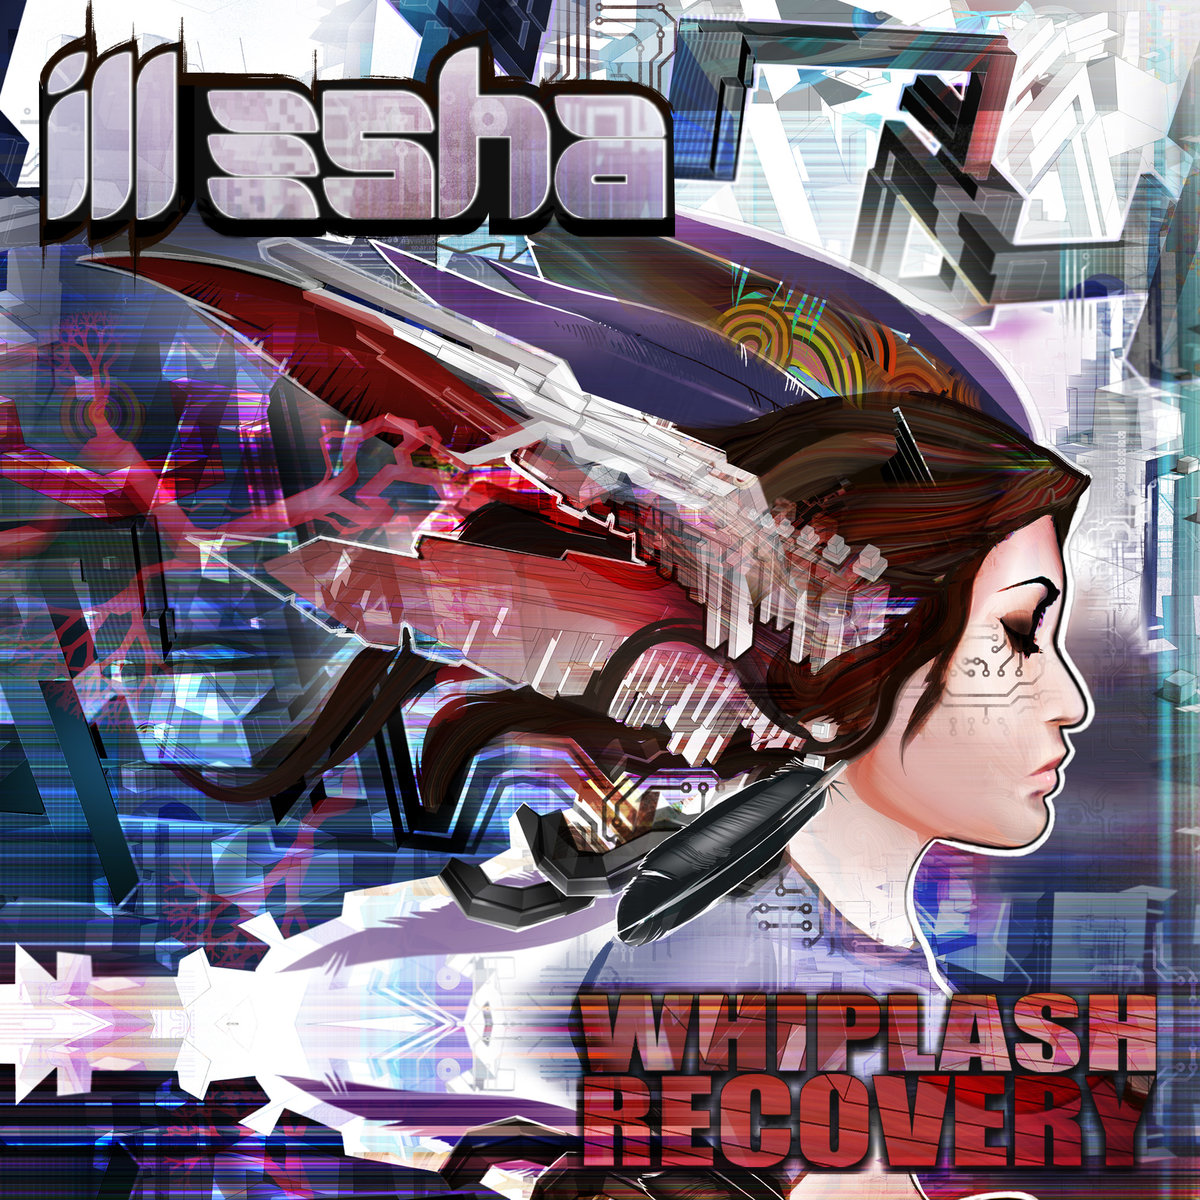 ill-esha - Halvation @ 'Whiplash Recovery' album (california, denver)